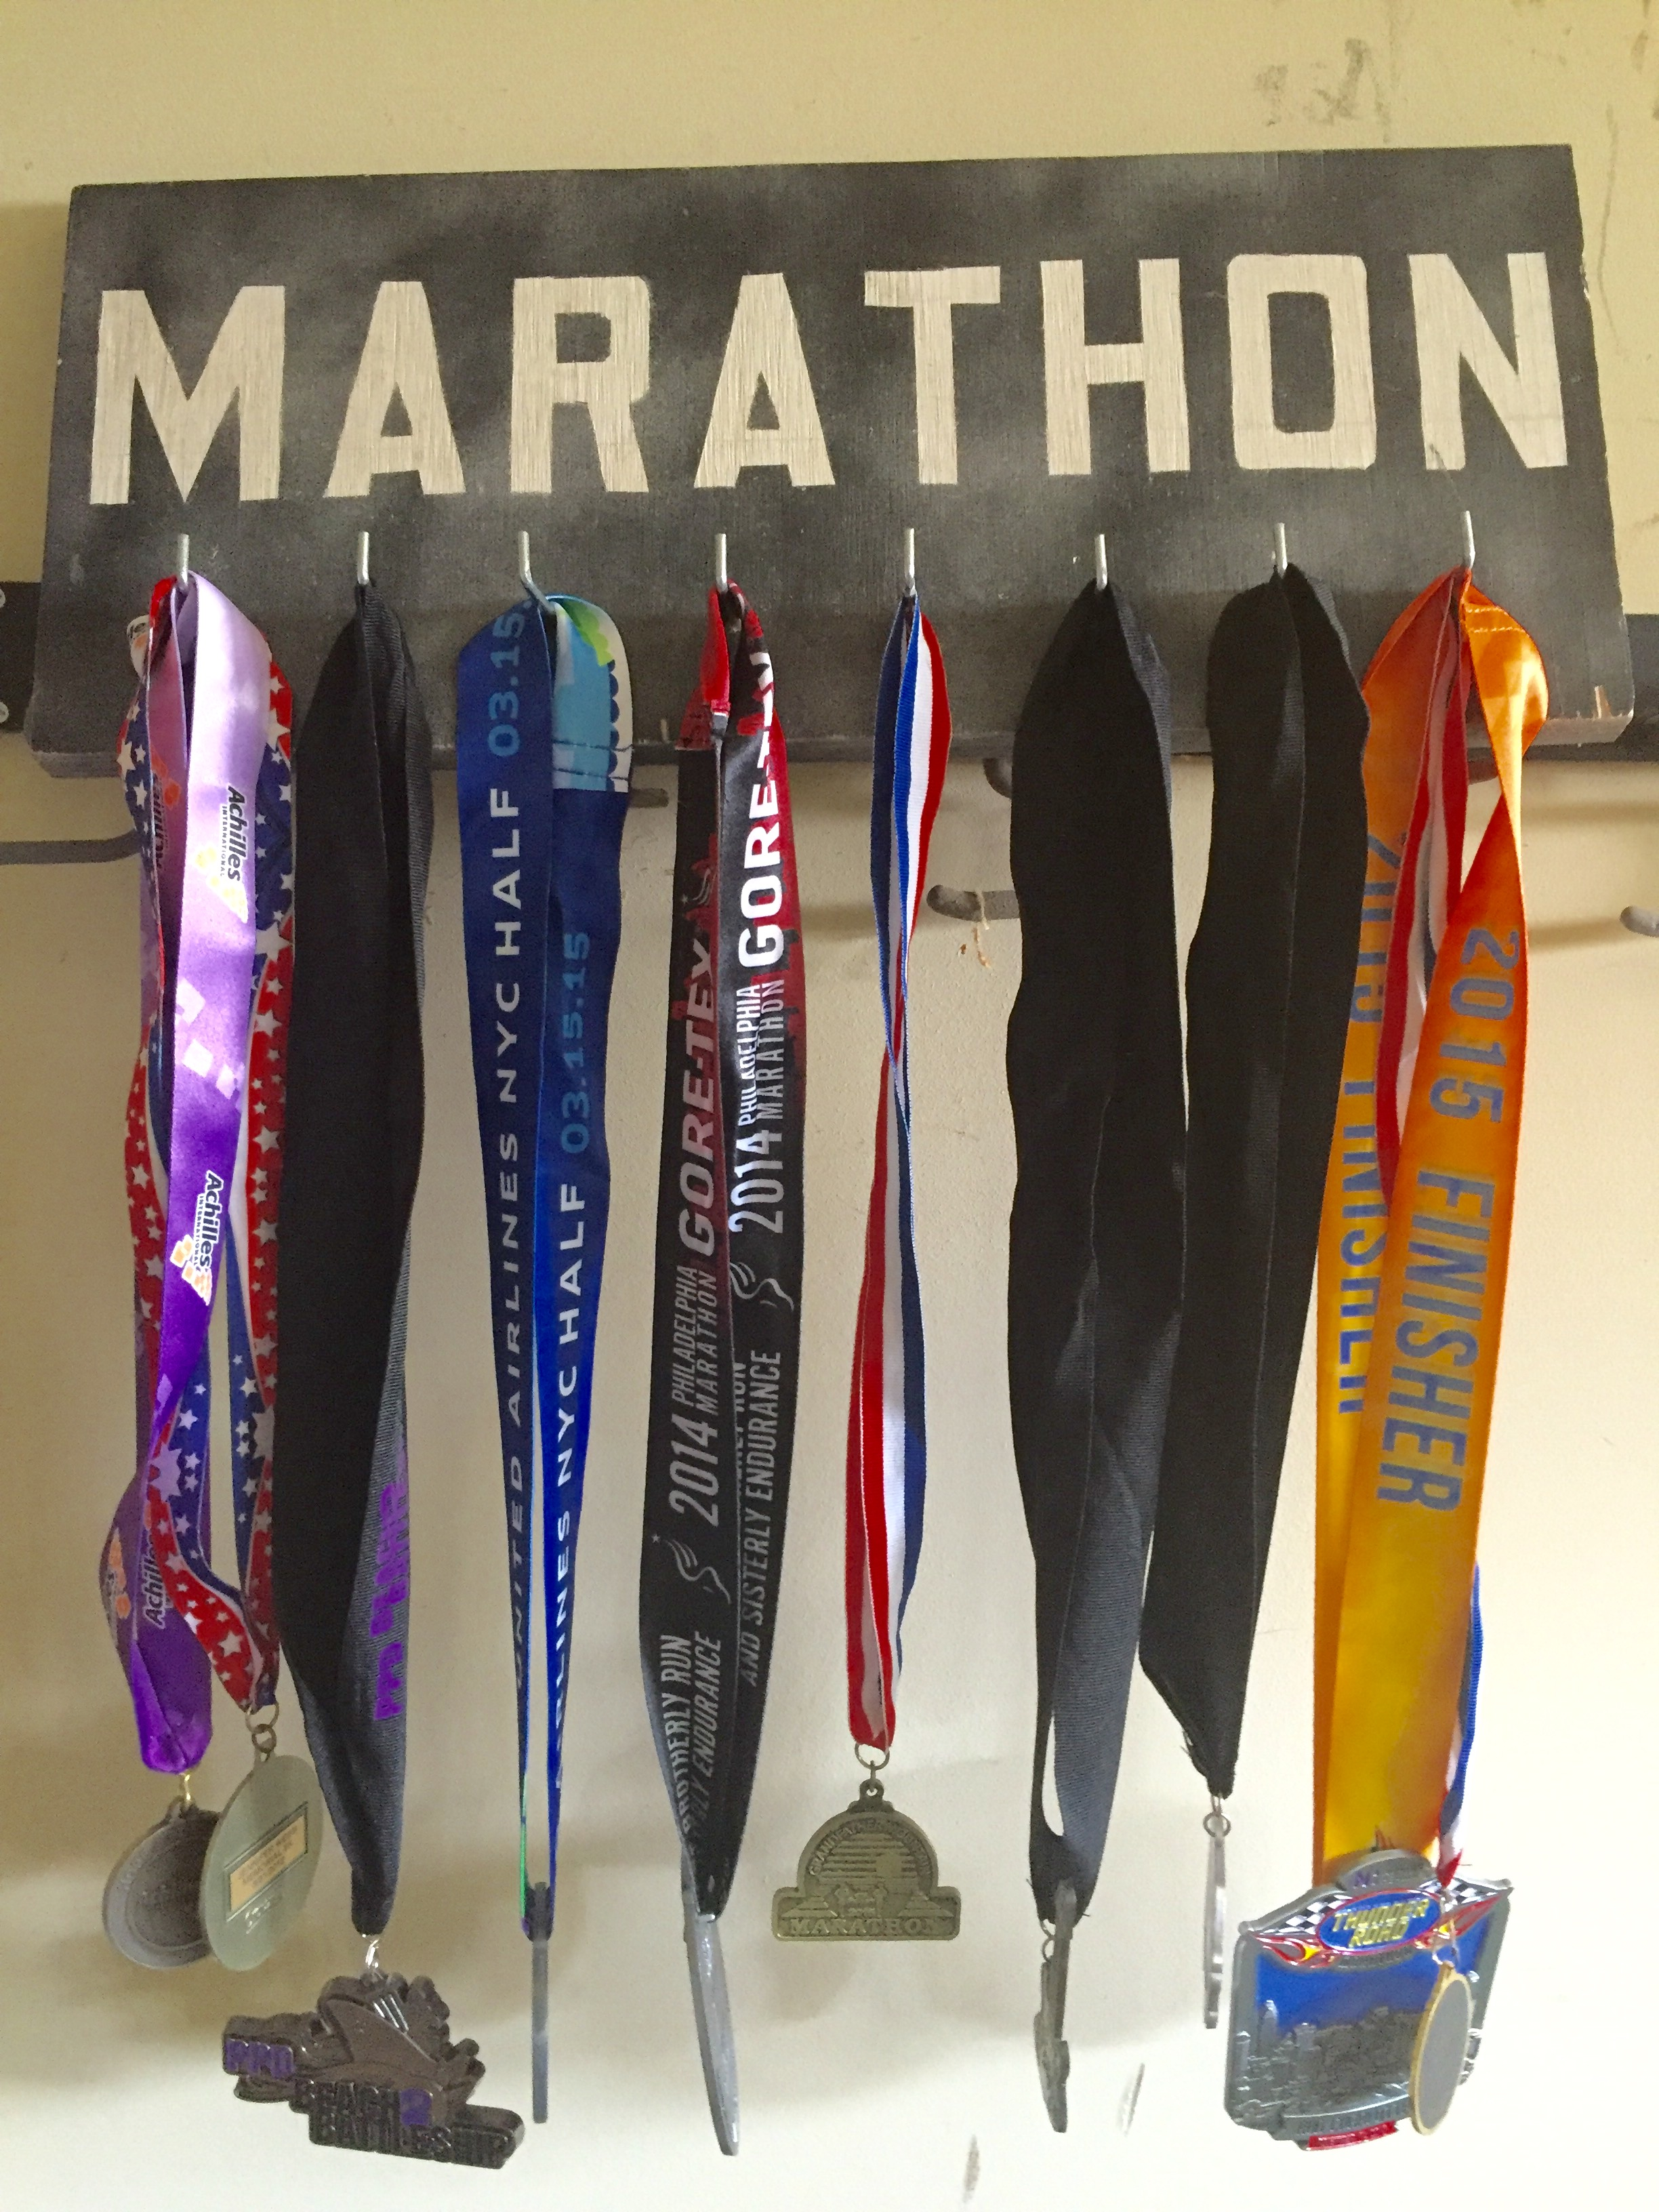 Of course I hung up my new medal too which is the far one on the right!